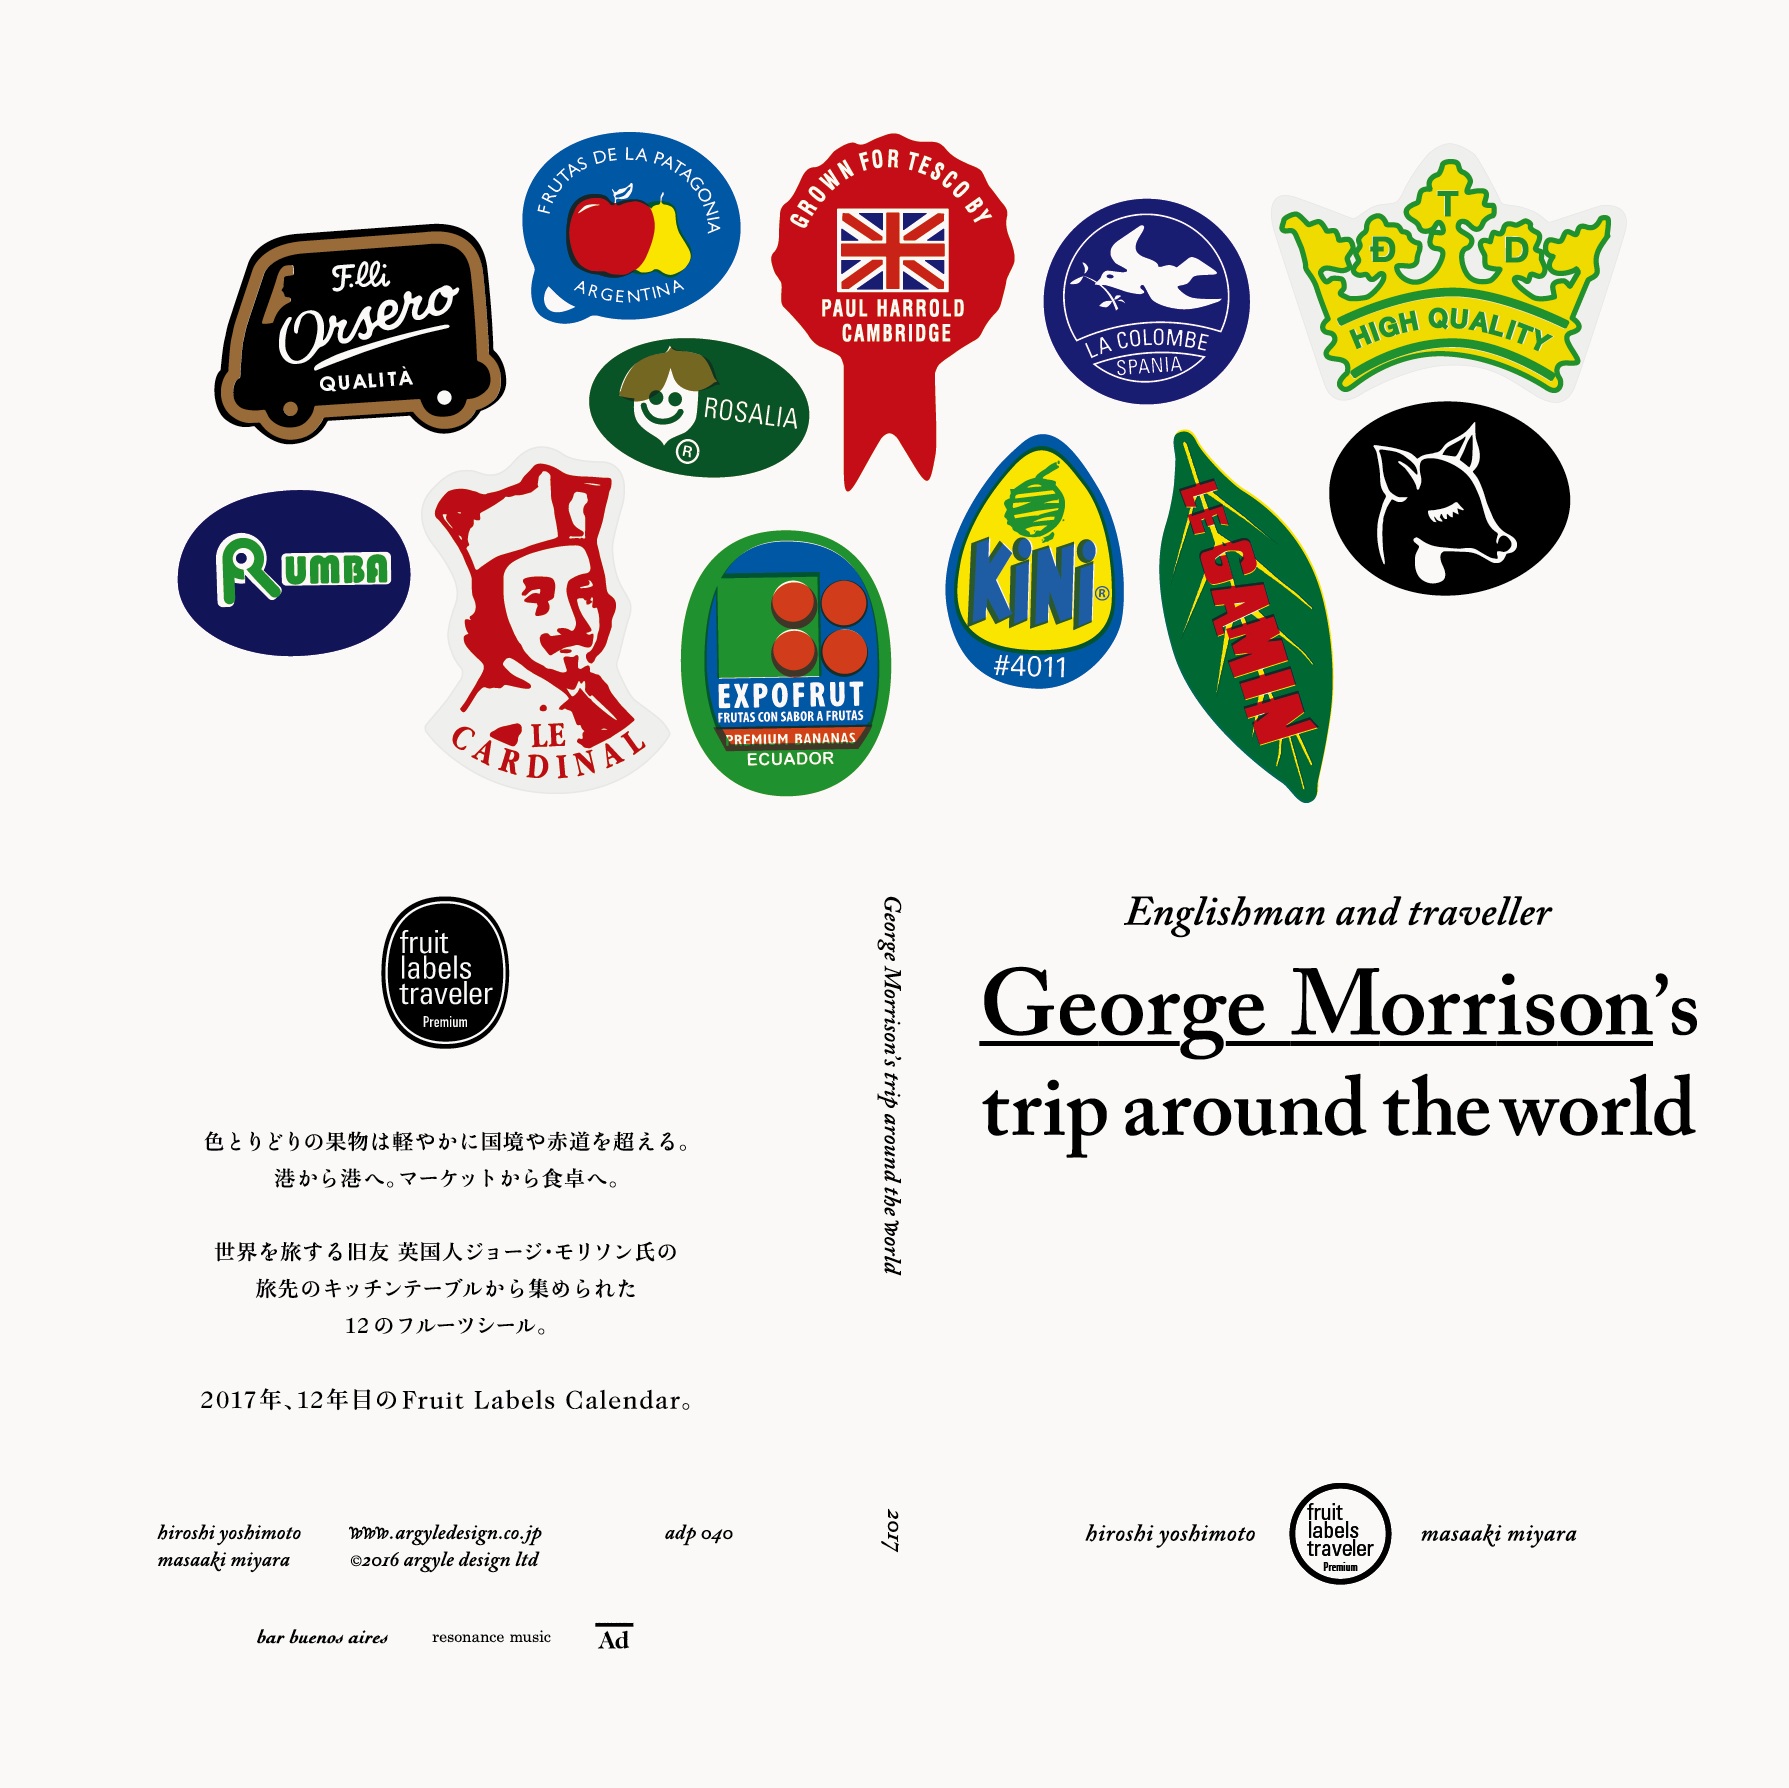 George Morrison's Trip Around the World|Fruit Labels Traveler|Calendar 2017